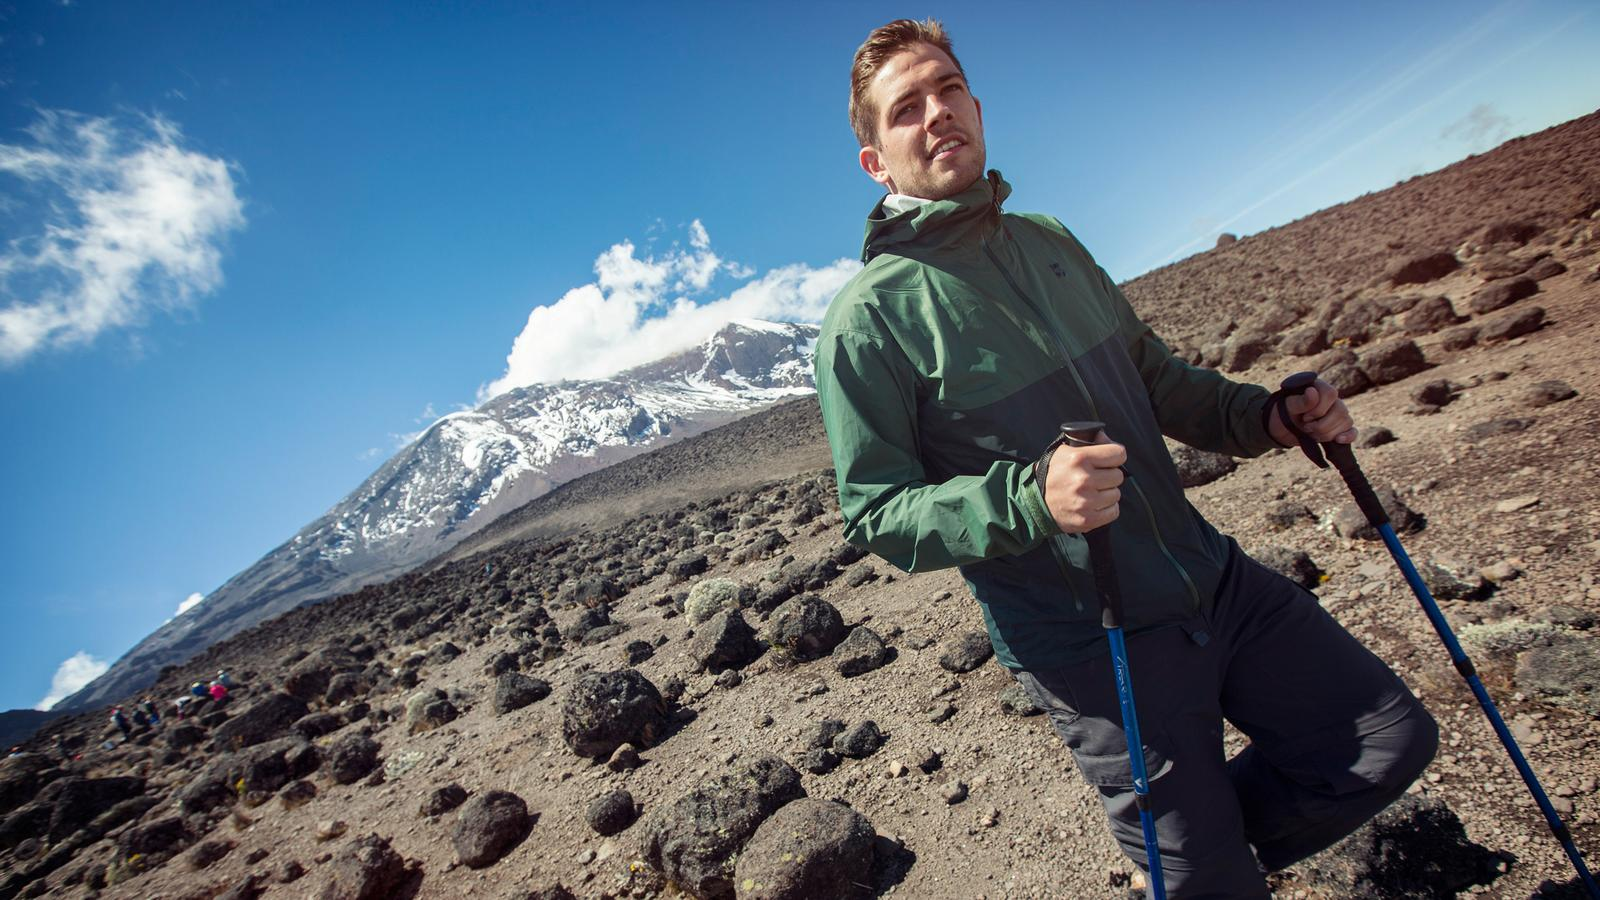 Traveller confidently hiking up the rocky trails of Kilimanjaro in Tanzania